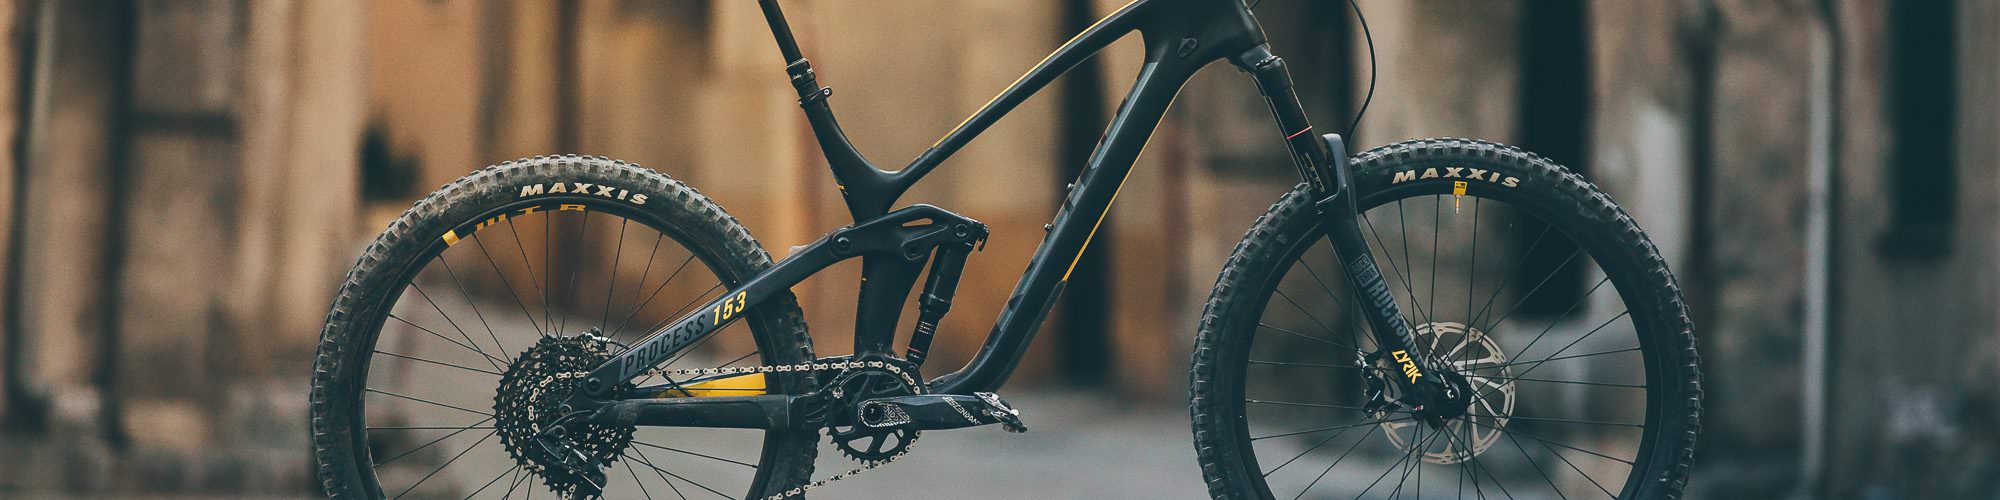 Kona Process 153 Cr 275 Review Enduro Mountainbike Magazine Both Have Been Verified I Like The Bmtb A Lot However Just